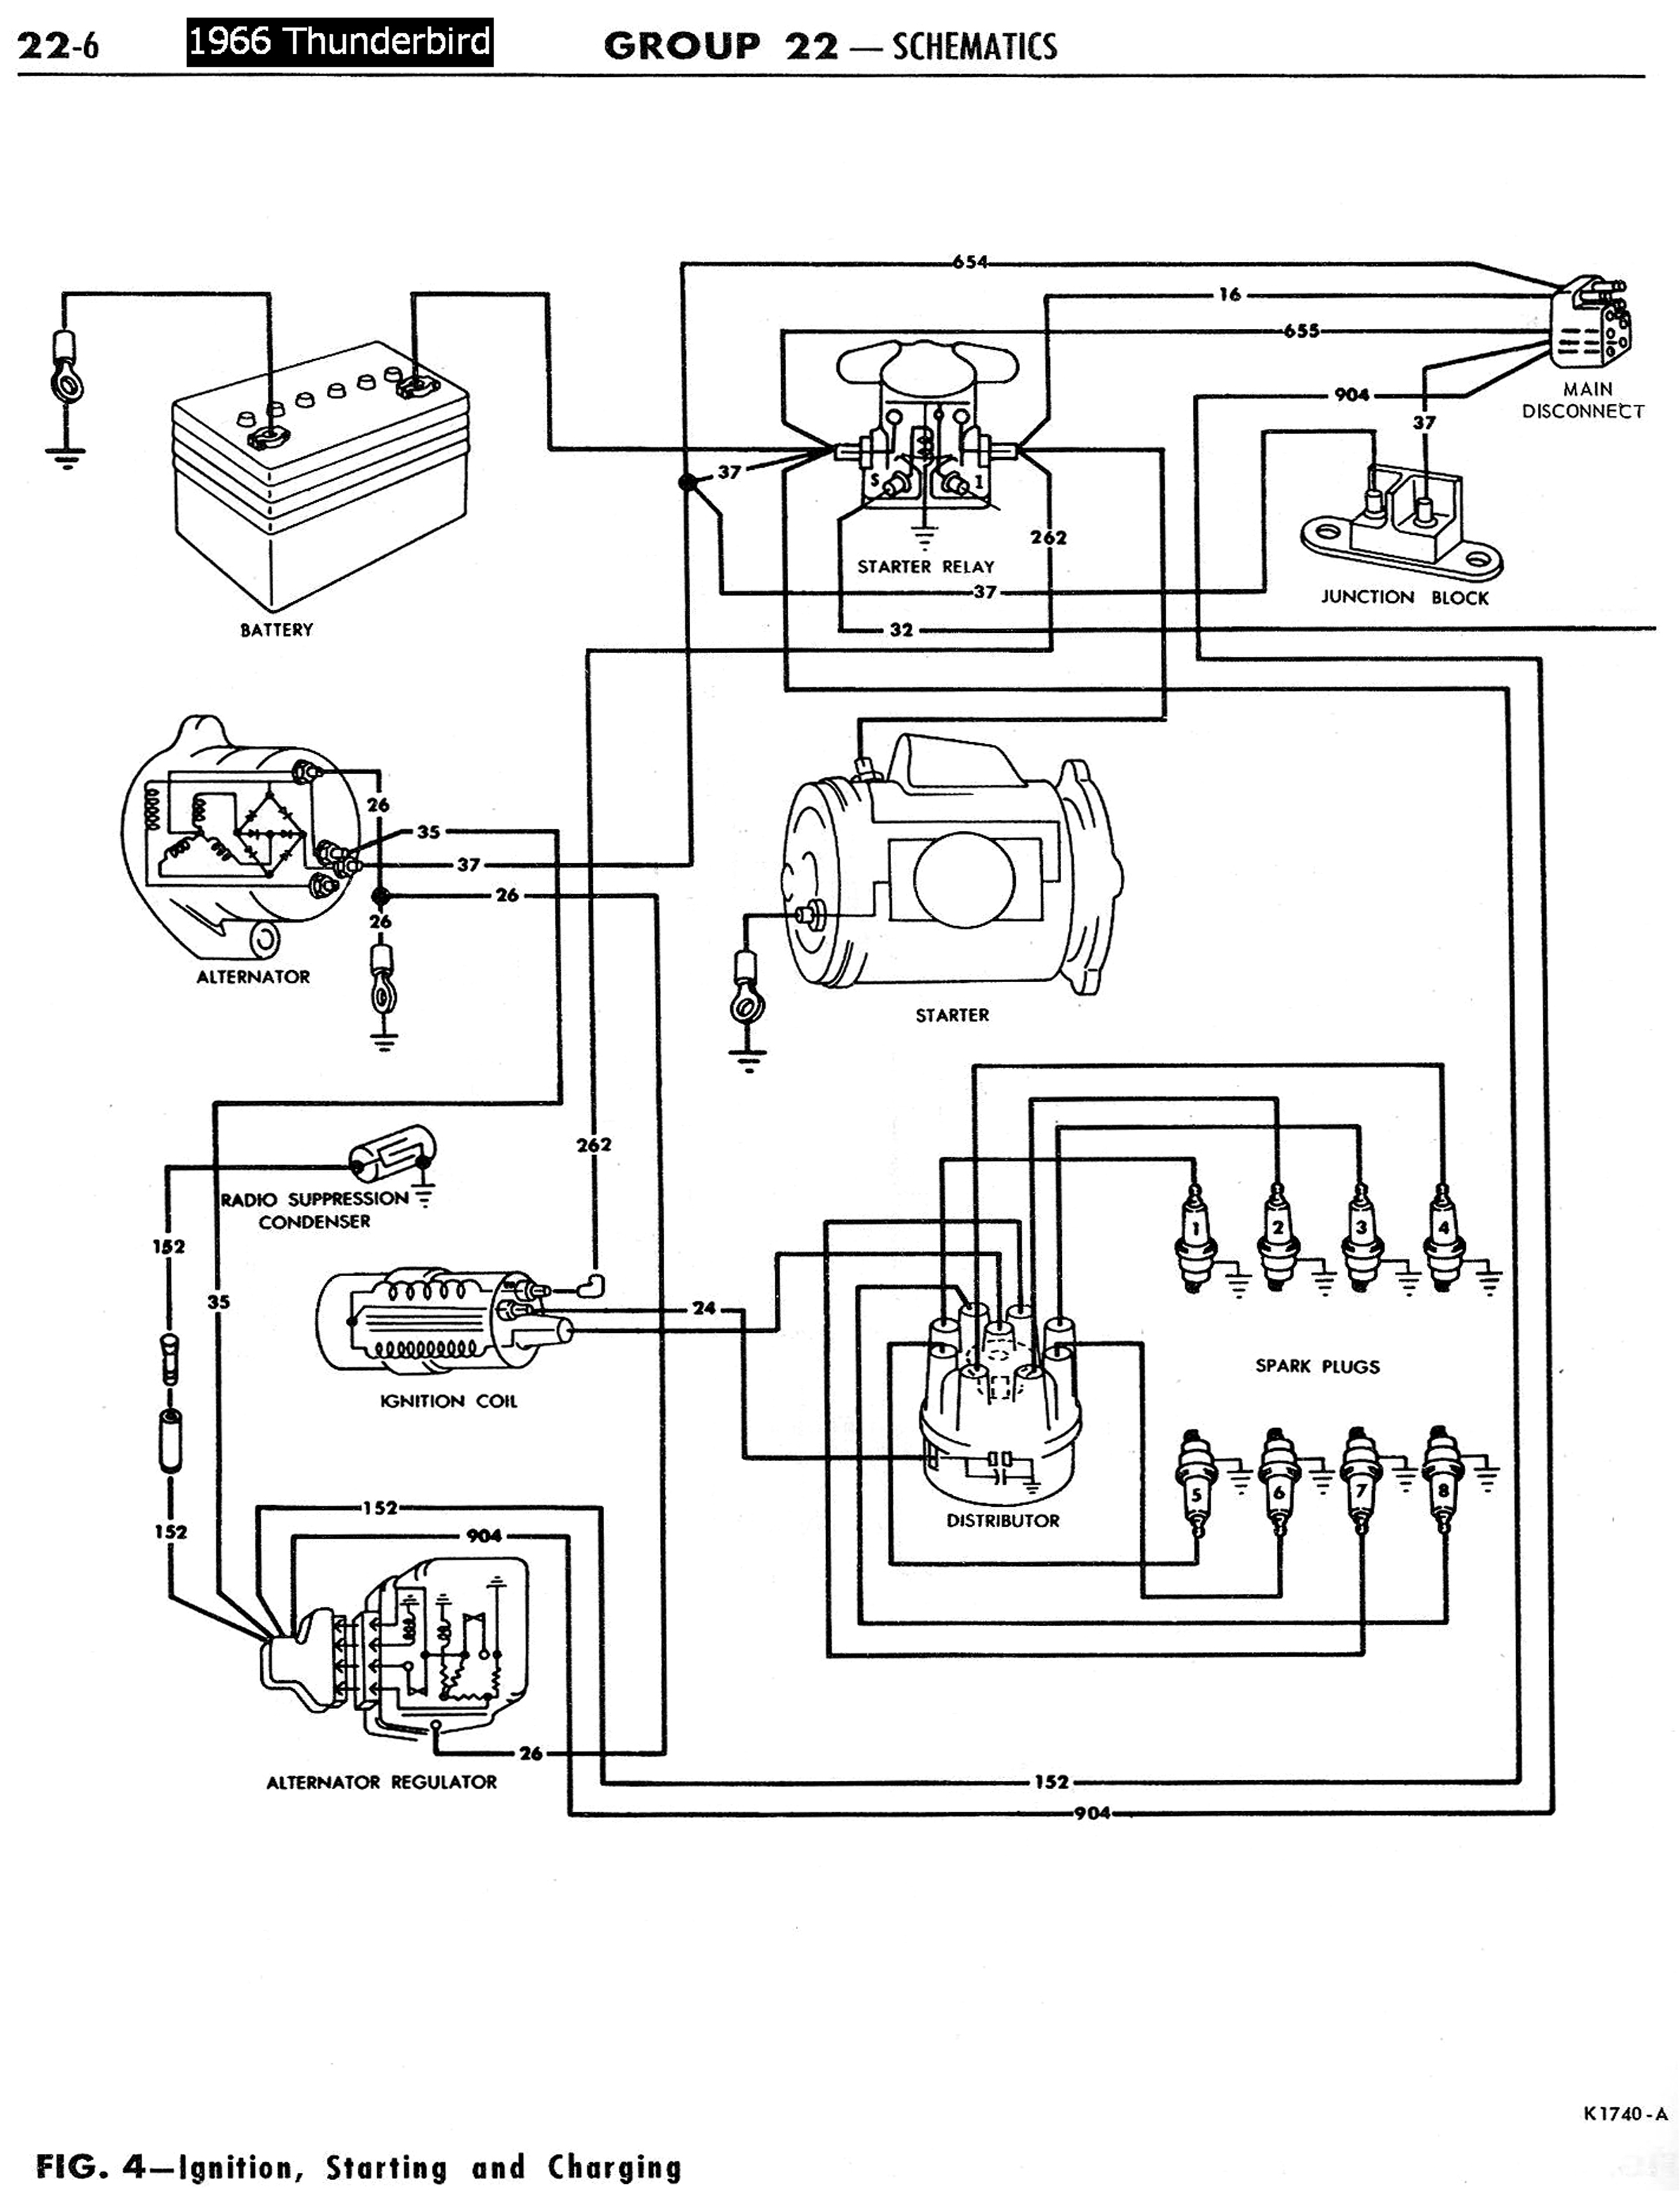 1955 ford fairlane wiring diagram typical thunderbird 36